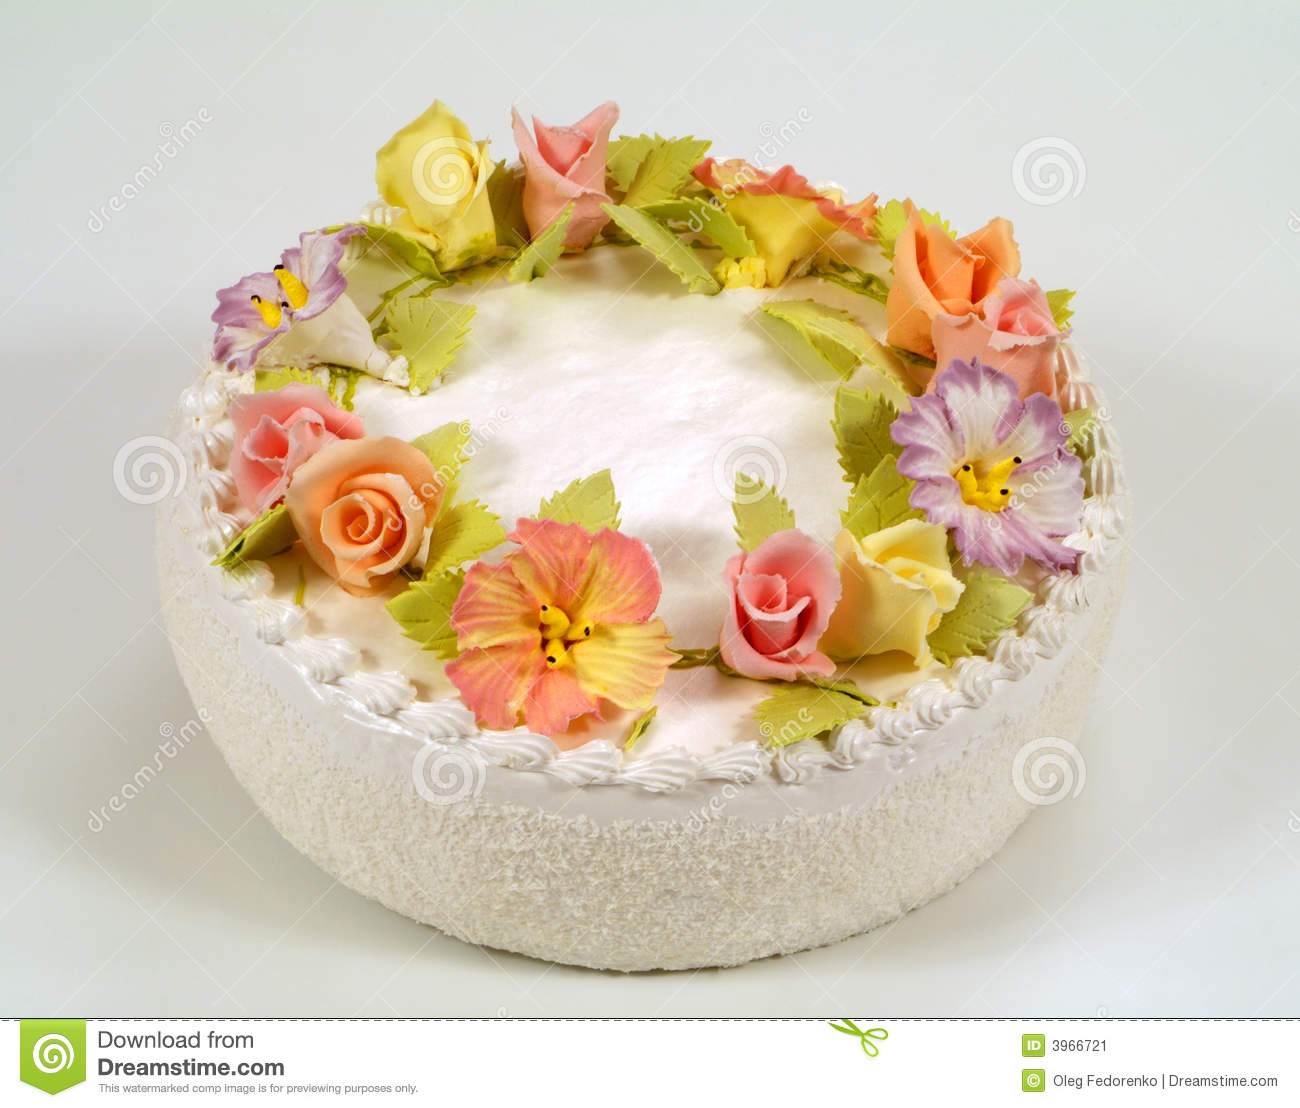 Cake Decorated With Flowers : Cake Decorated With Flowers Stock Image - Image: 3966721